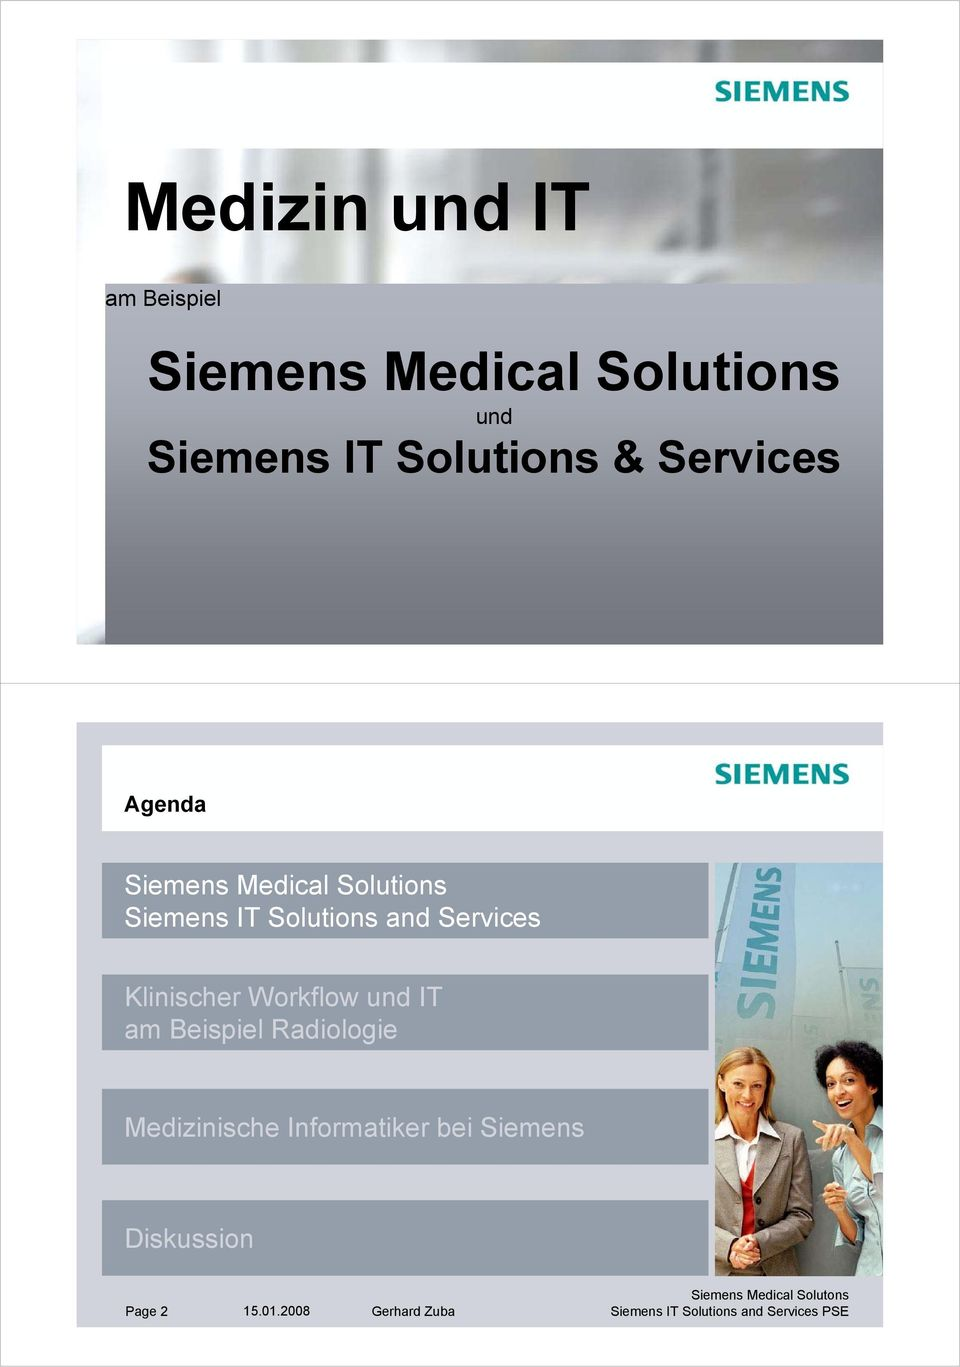 Solutions Siemens IT Solutions and Services am Beispiel